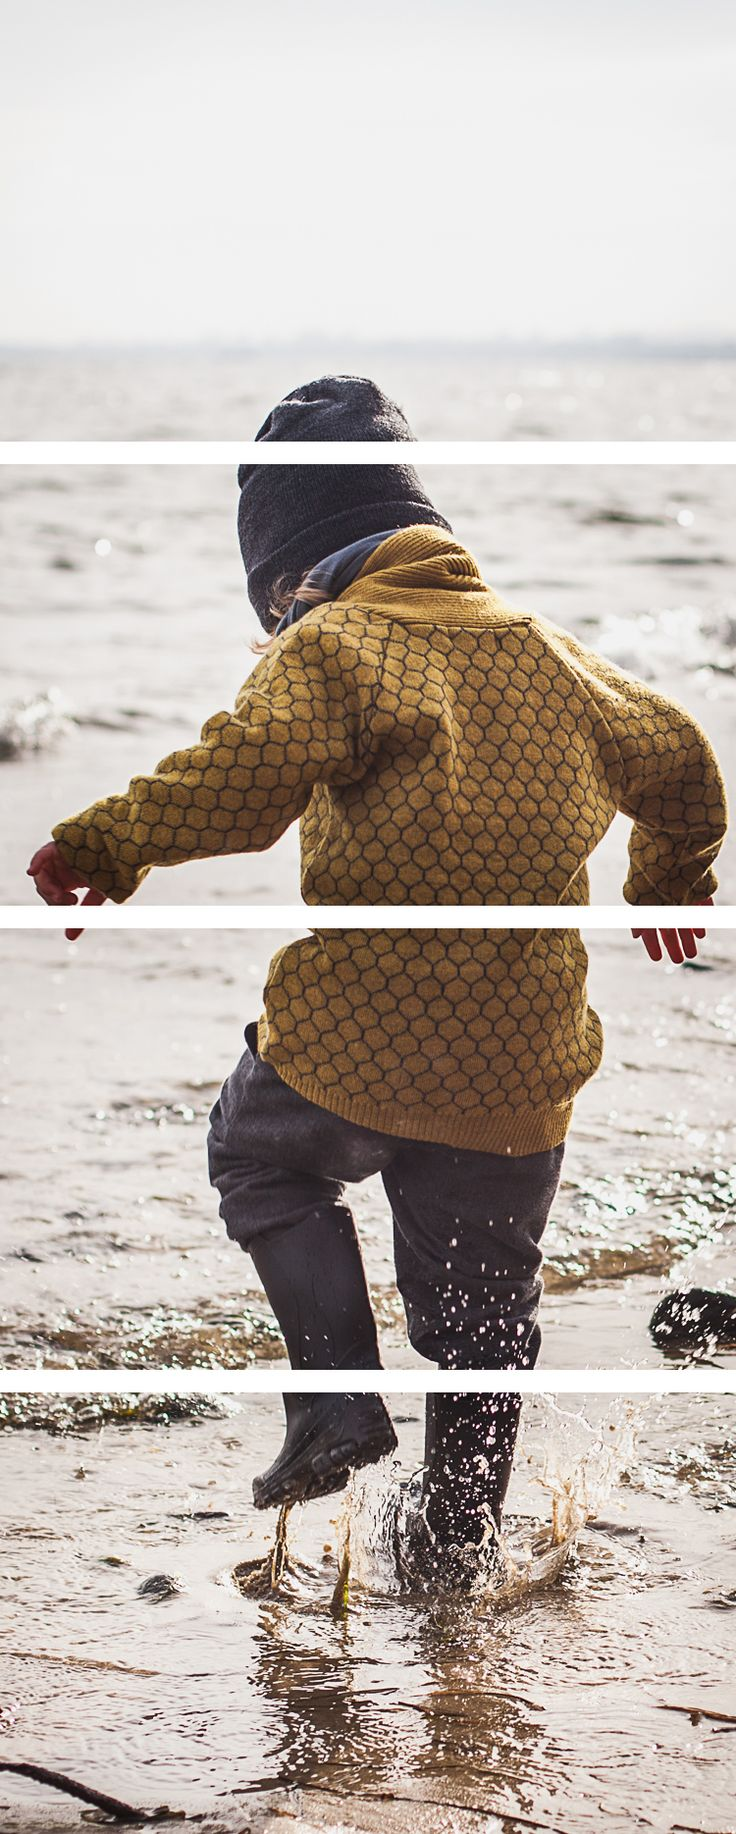 Jumping in massive puddles ;) #childhoodunplugged #kidsphotography #photography